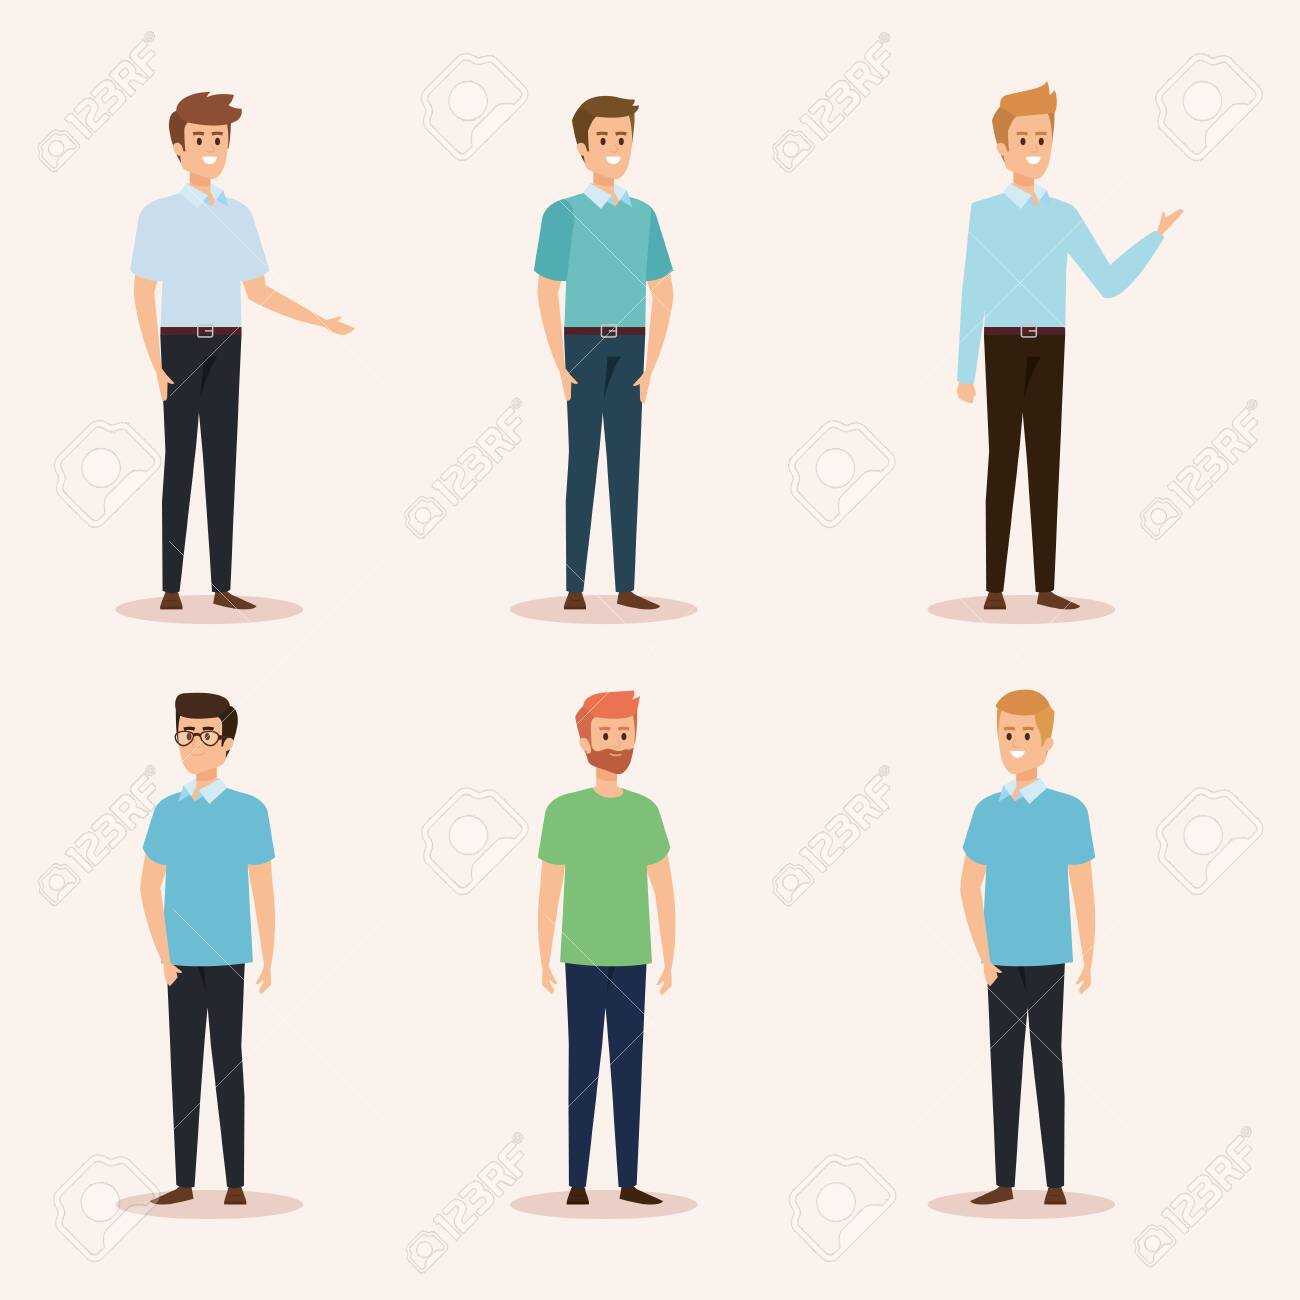 set of nice men with hairstyle and casual clothes vector illustration - 125253819